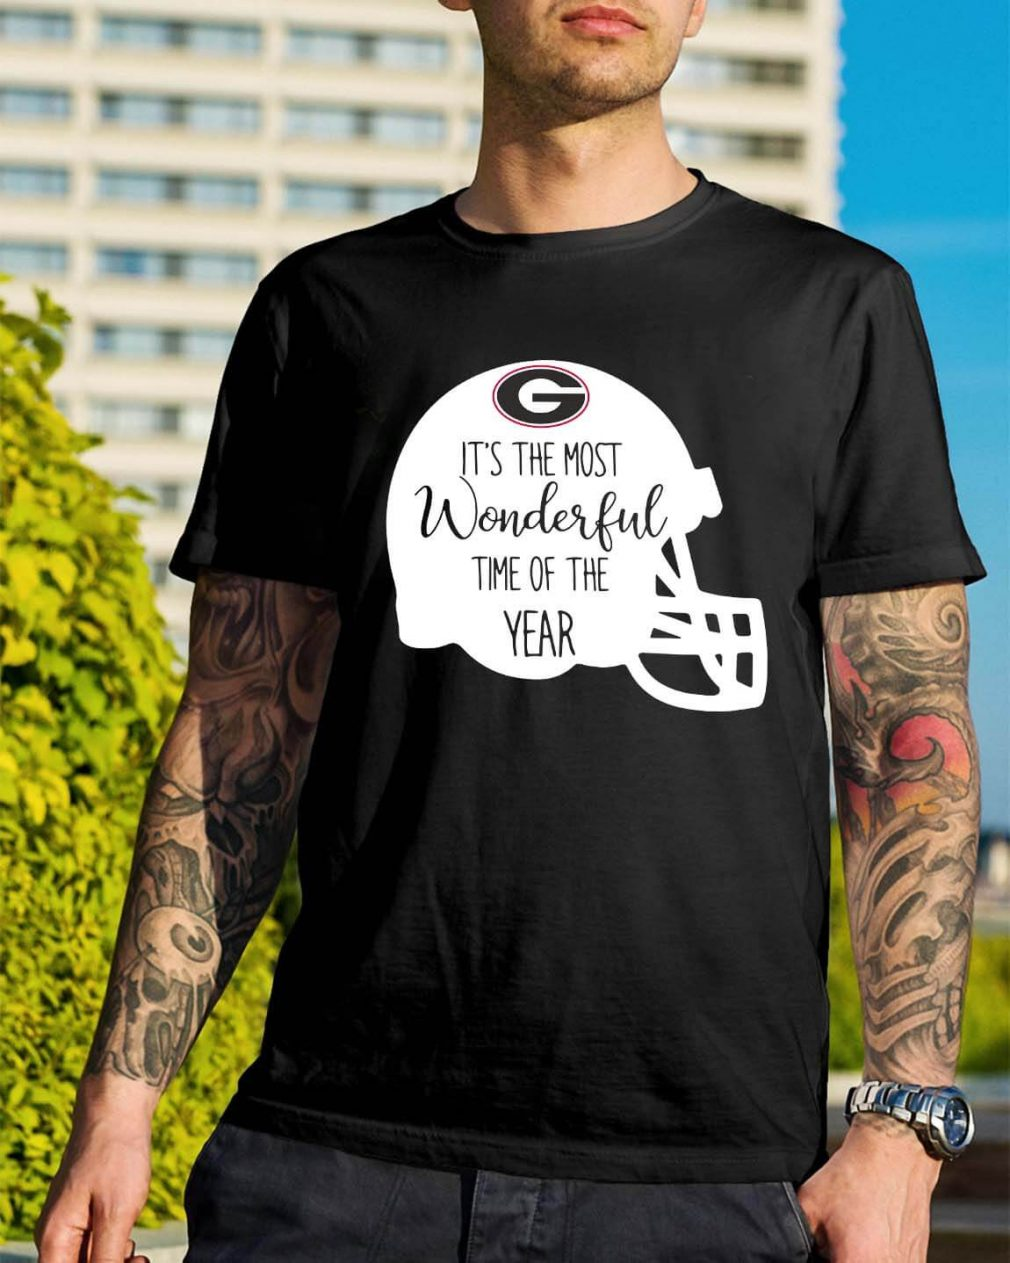 Georgia Bulldogs it's the most wonderful time of the year shirt